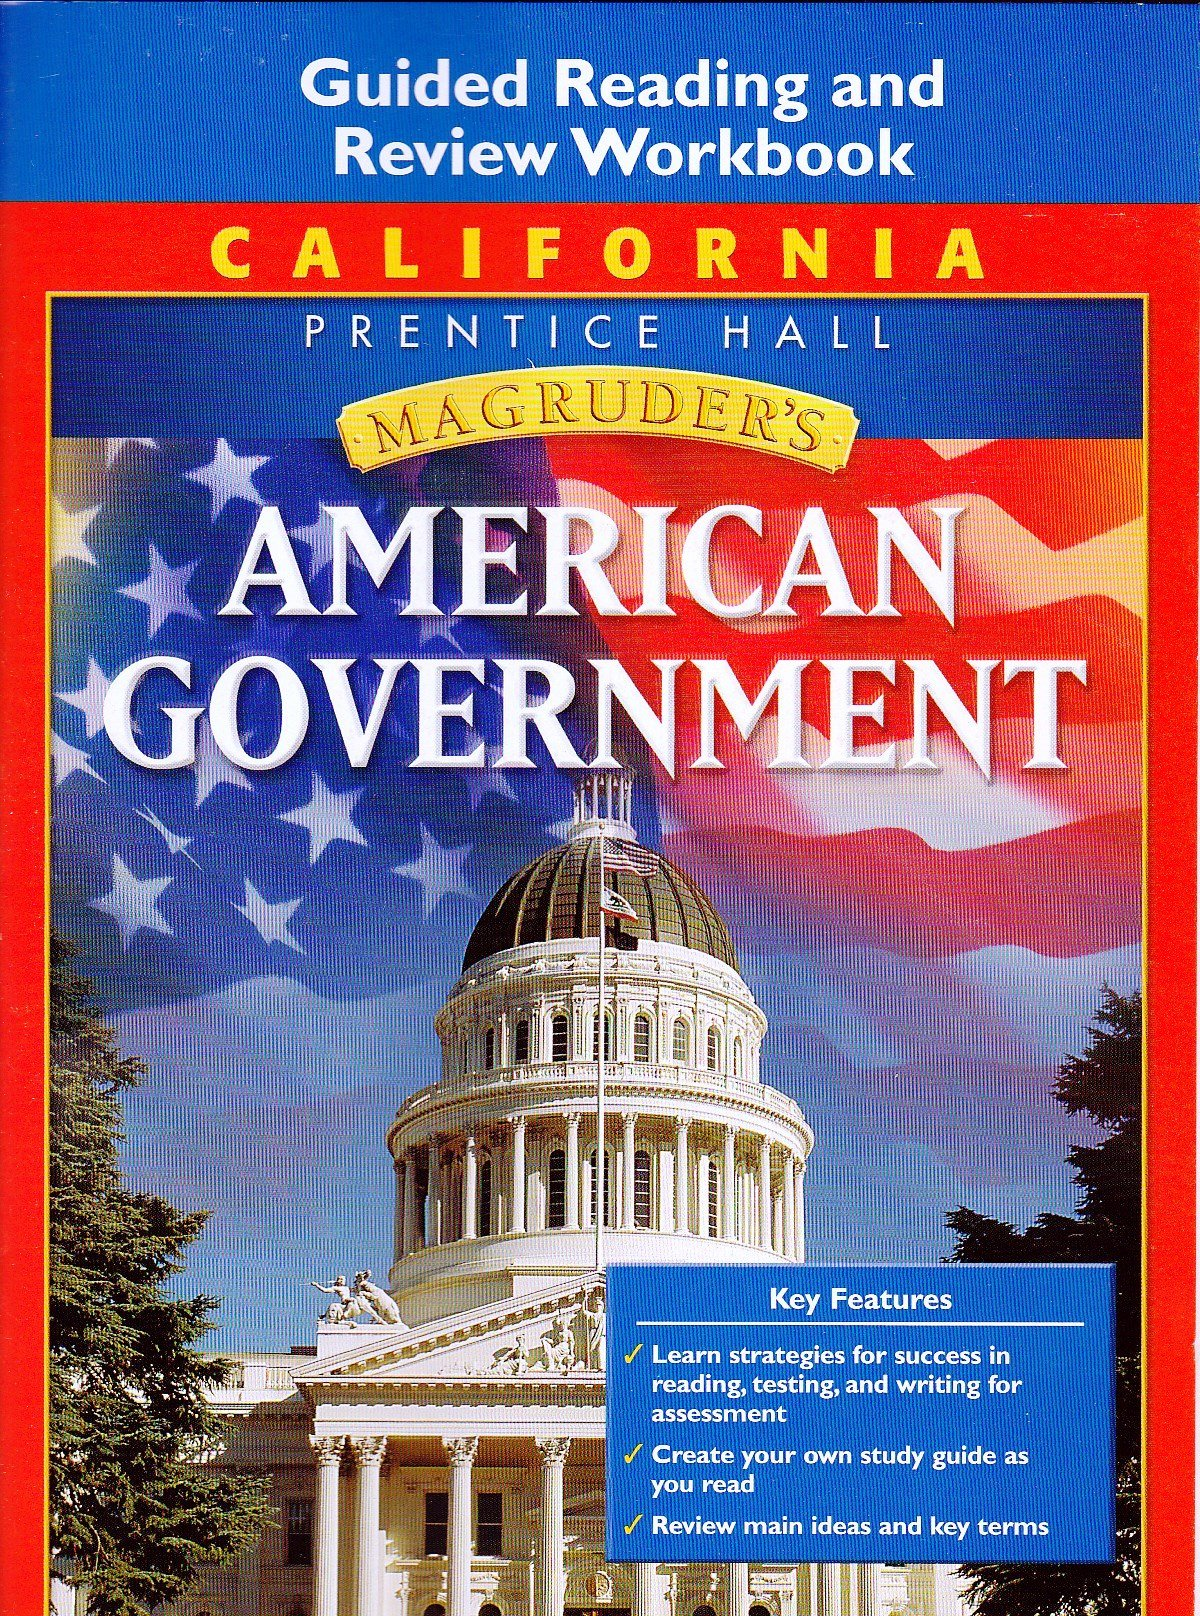 Magruders American Government Ebook